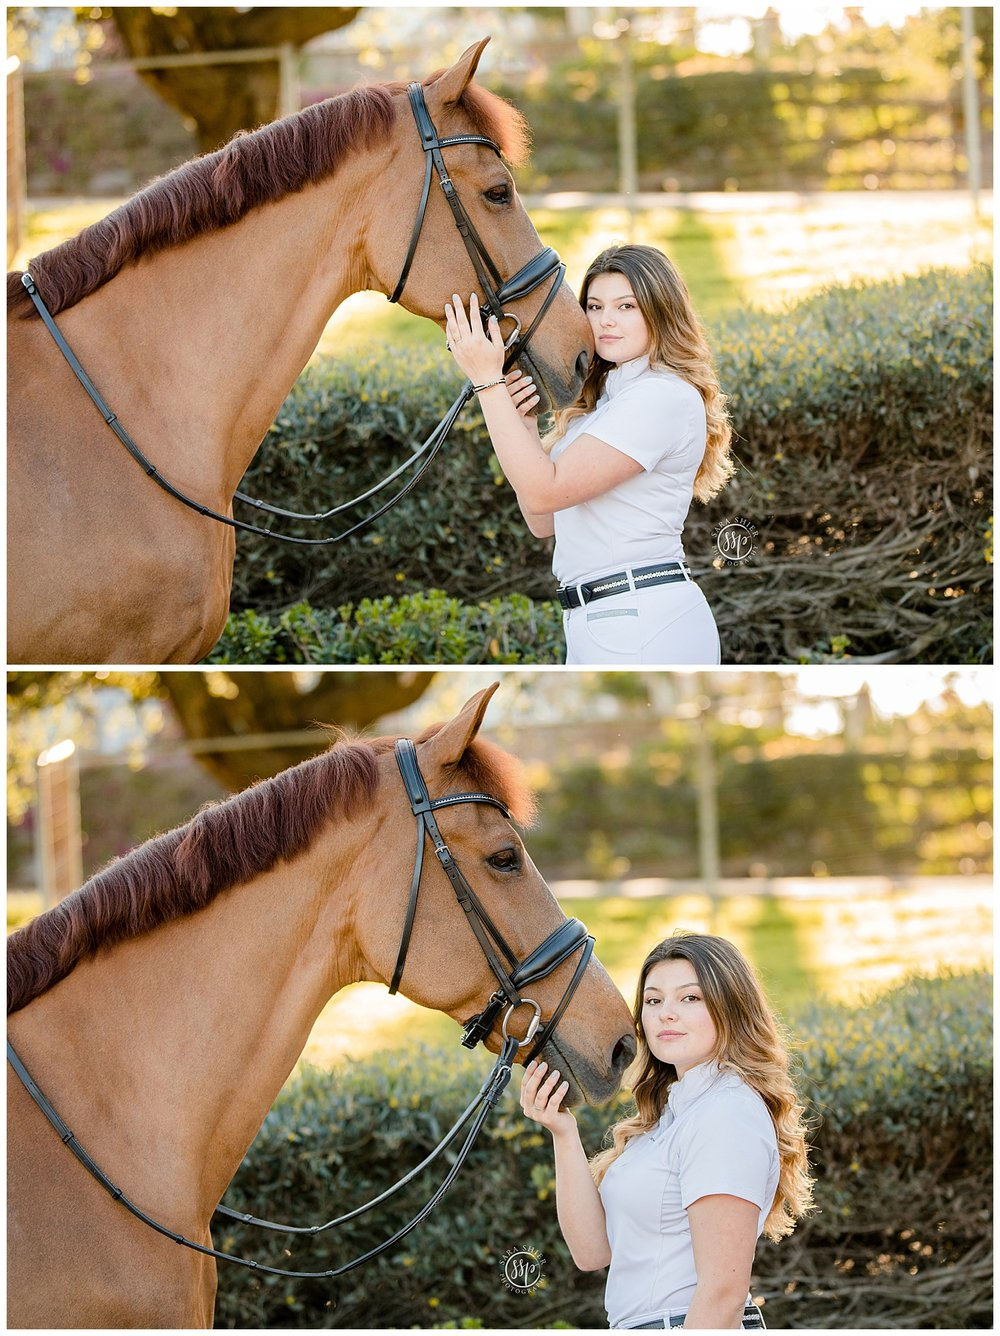 Black Background Horse Rider Equine Photographer Southern California Sara Shier Photography SoCal Equestrian Cowgirl_0431.jpg